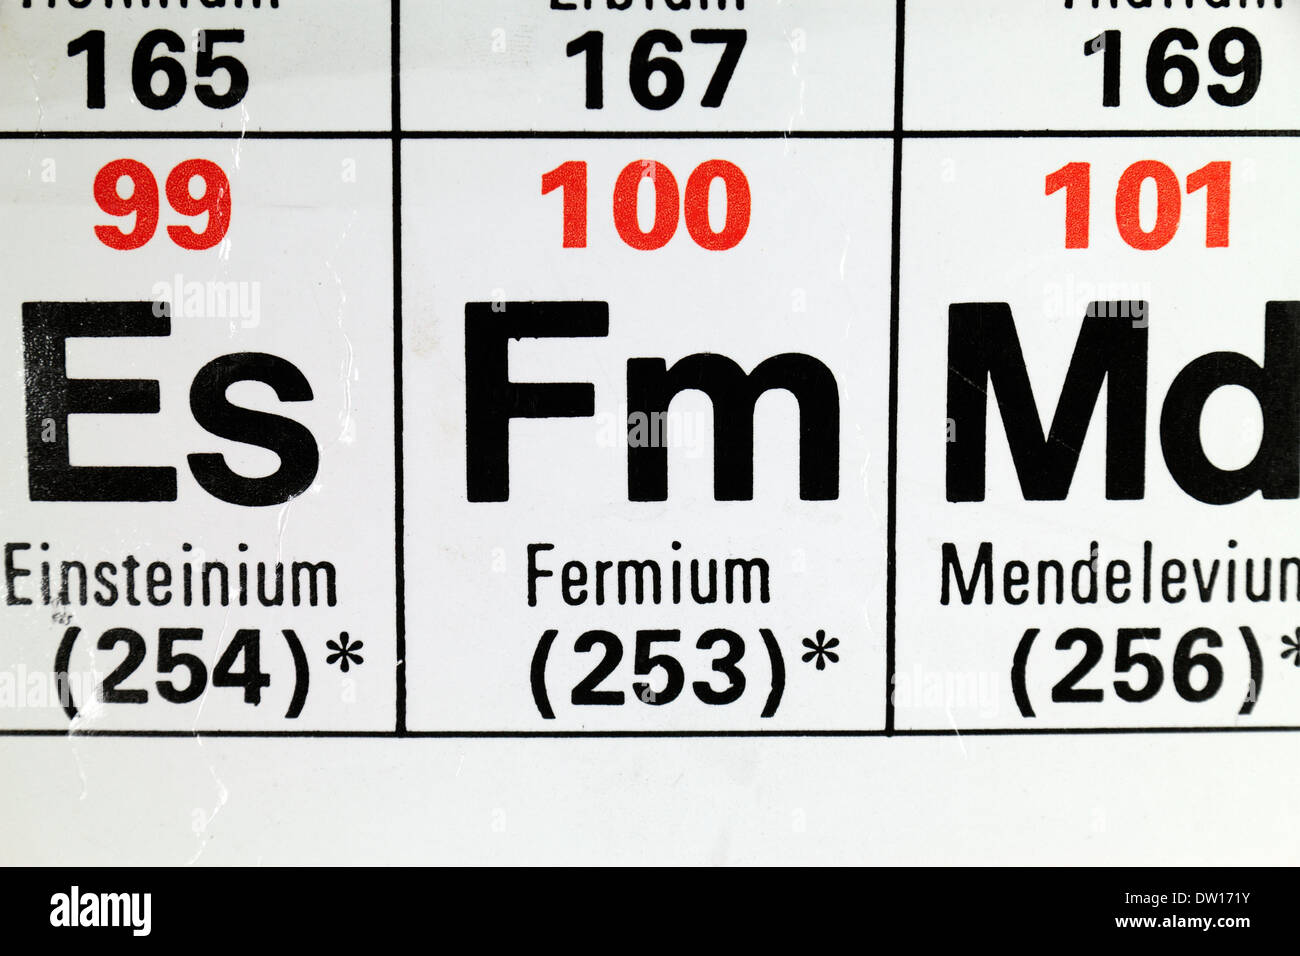 Relative atomic mass stock photos relative atomic mass stock fermium fm as it appears on the periodic table stock image urtaz Choice Image